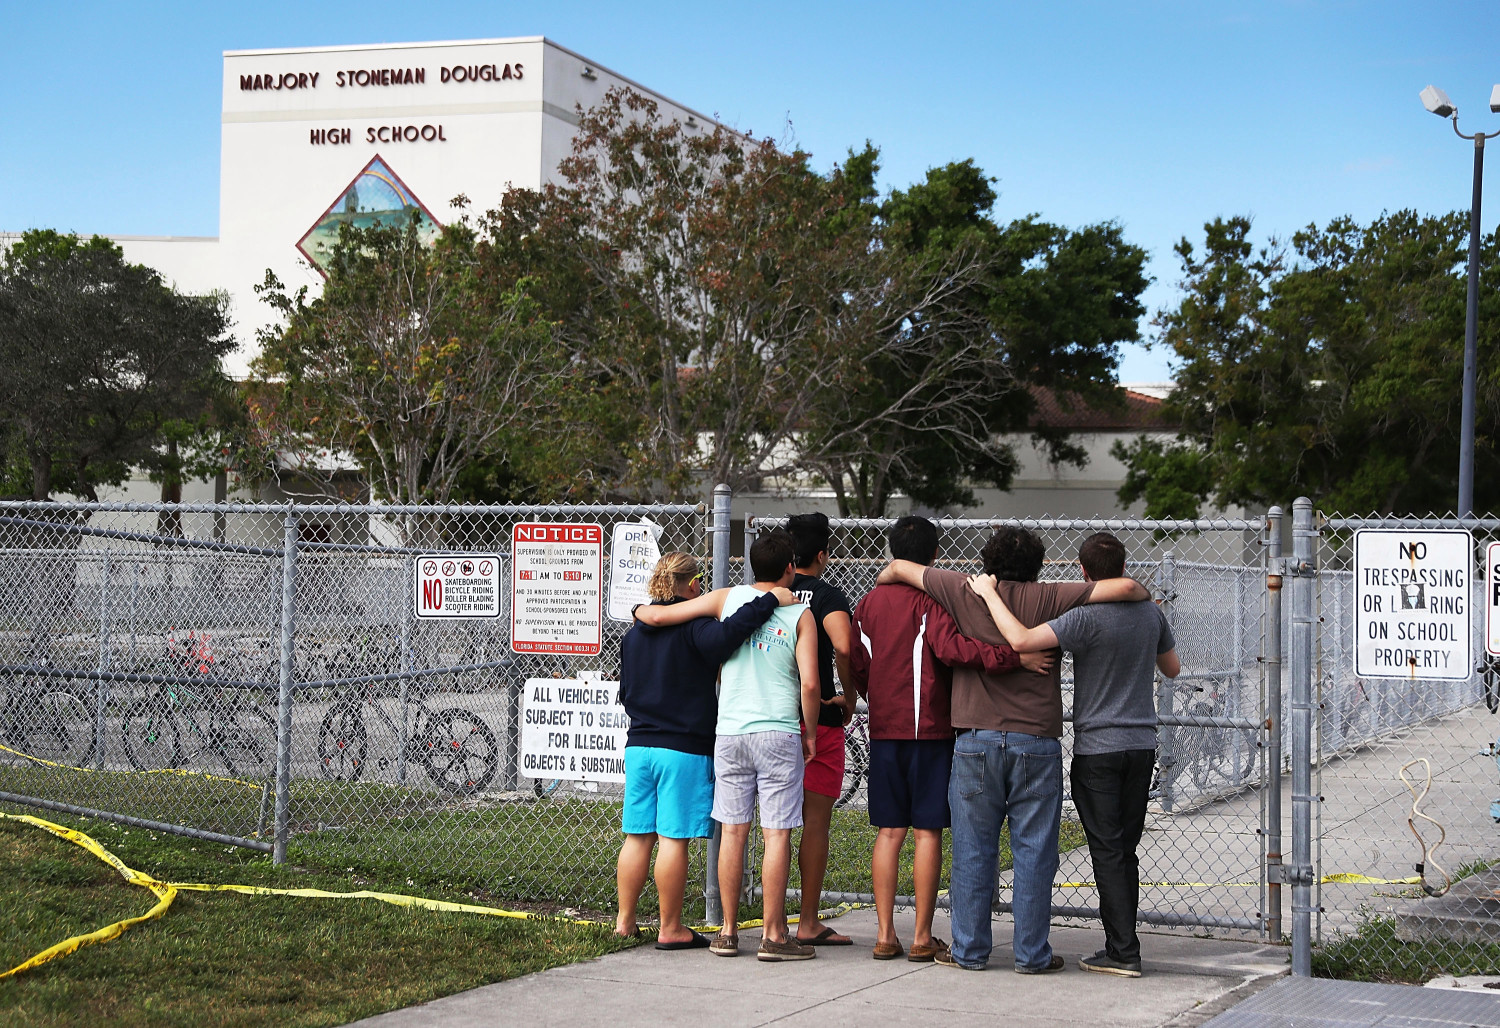 PARKLAND, FL - FEBRUARY 18:  People look on at the Marjory Stoneman Douglas High School on February 18, 2018 in Parkland, Florida. Police arrested 19 year old former student Nikolas Cruz for the mass shooting that killed 17 people on February 14.  (Photo by Joe Raedle/Getty Images)